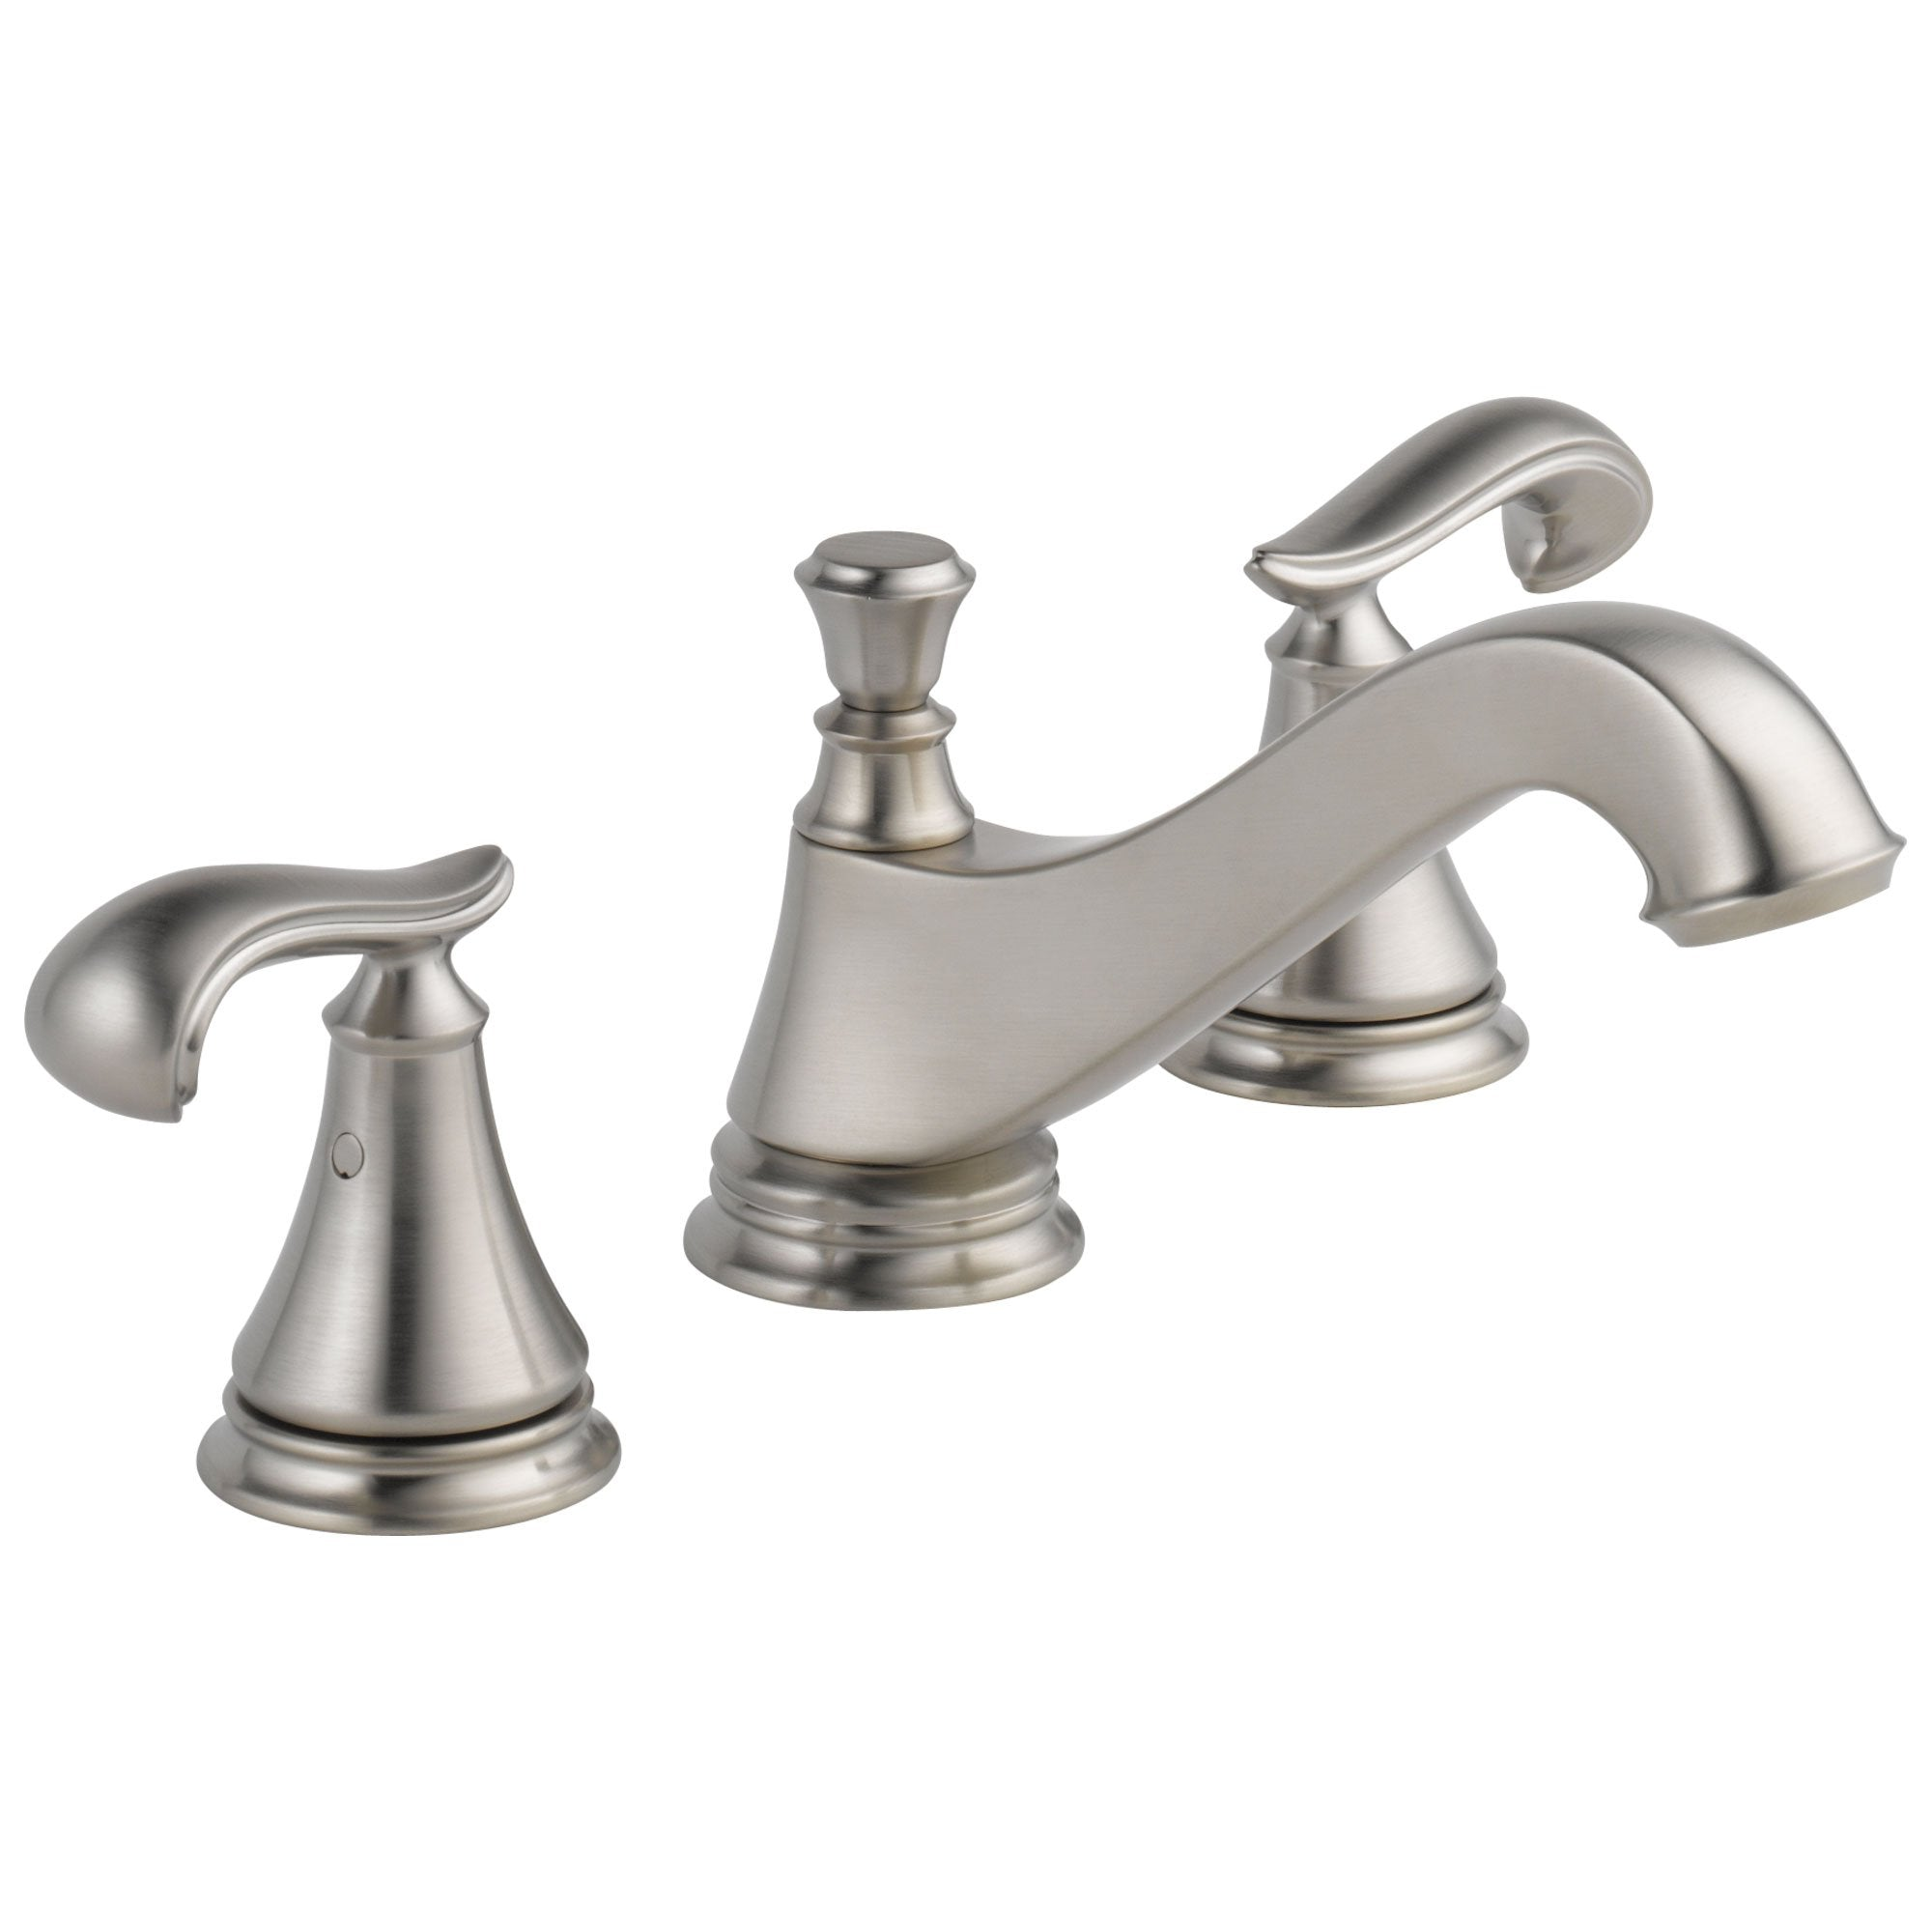 Delta Cassidy Collection Stainless Steel Finish Traditional Low Spout Widespread Lavatory Sink Faucet INCLUDES Two French Curve Lever Handles and Drain D1788V